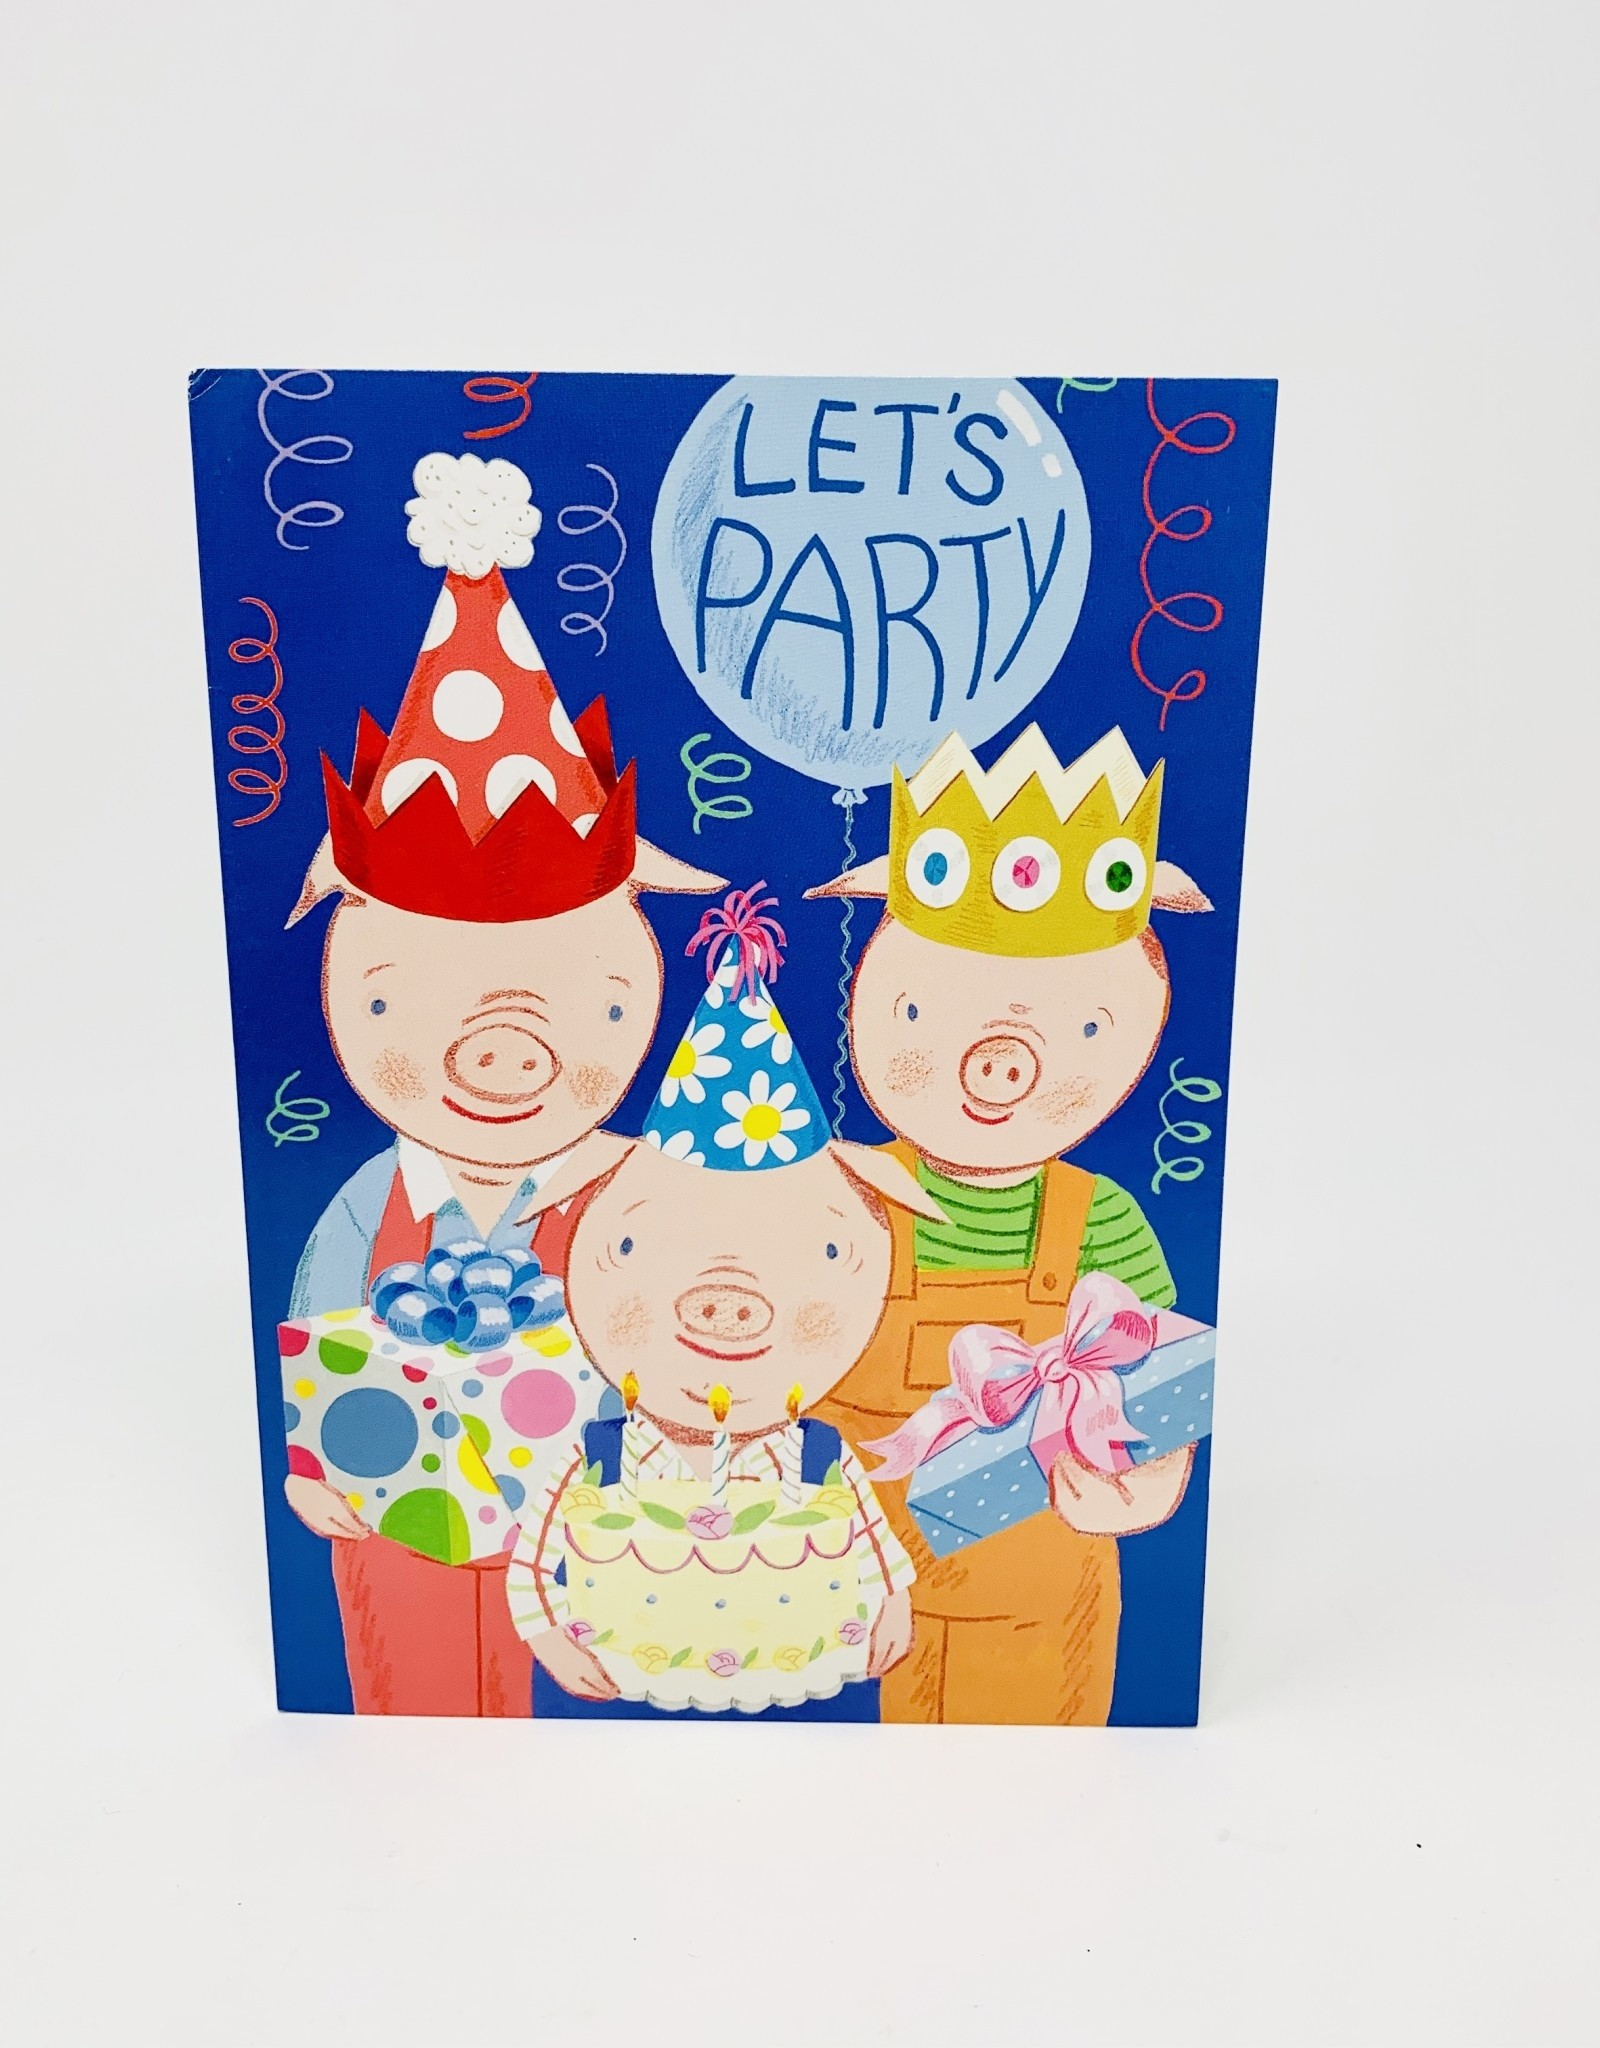 Eboo 3 pigs-Lets party